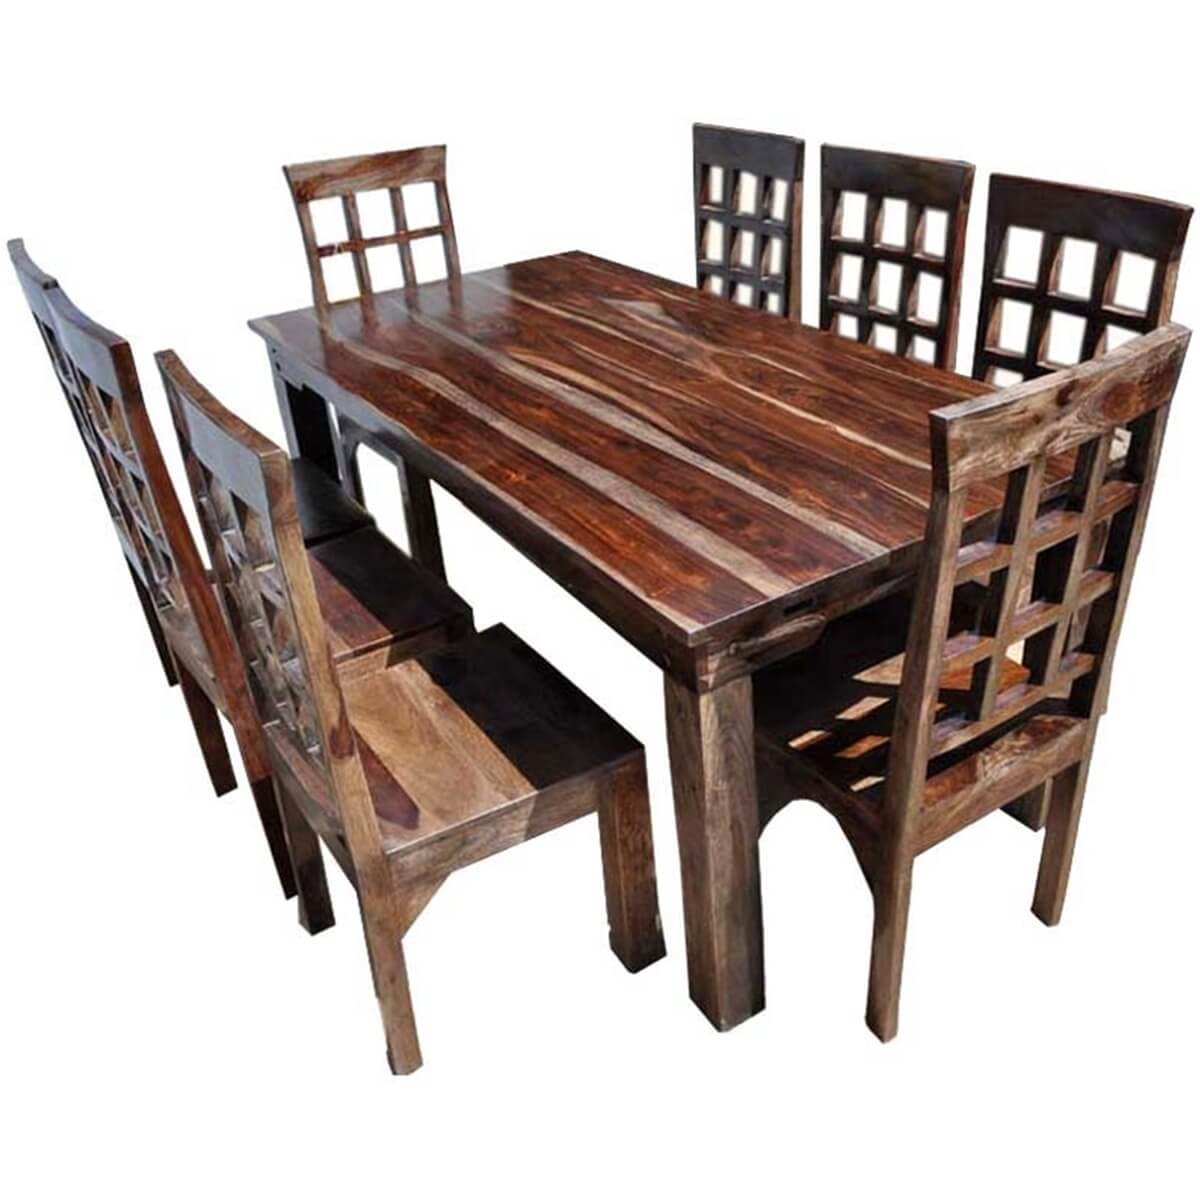 Portland rustic furniture dining room table chair set w for Portland reclaimed wood furniture